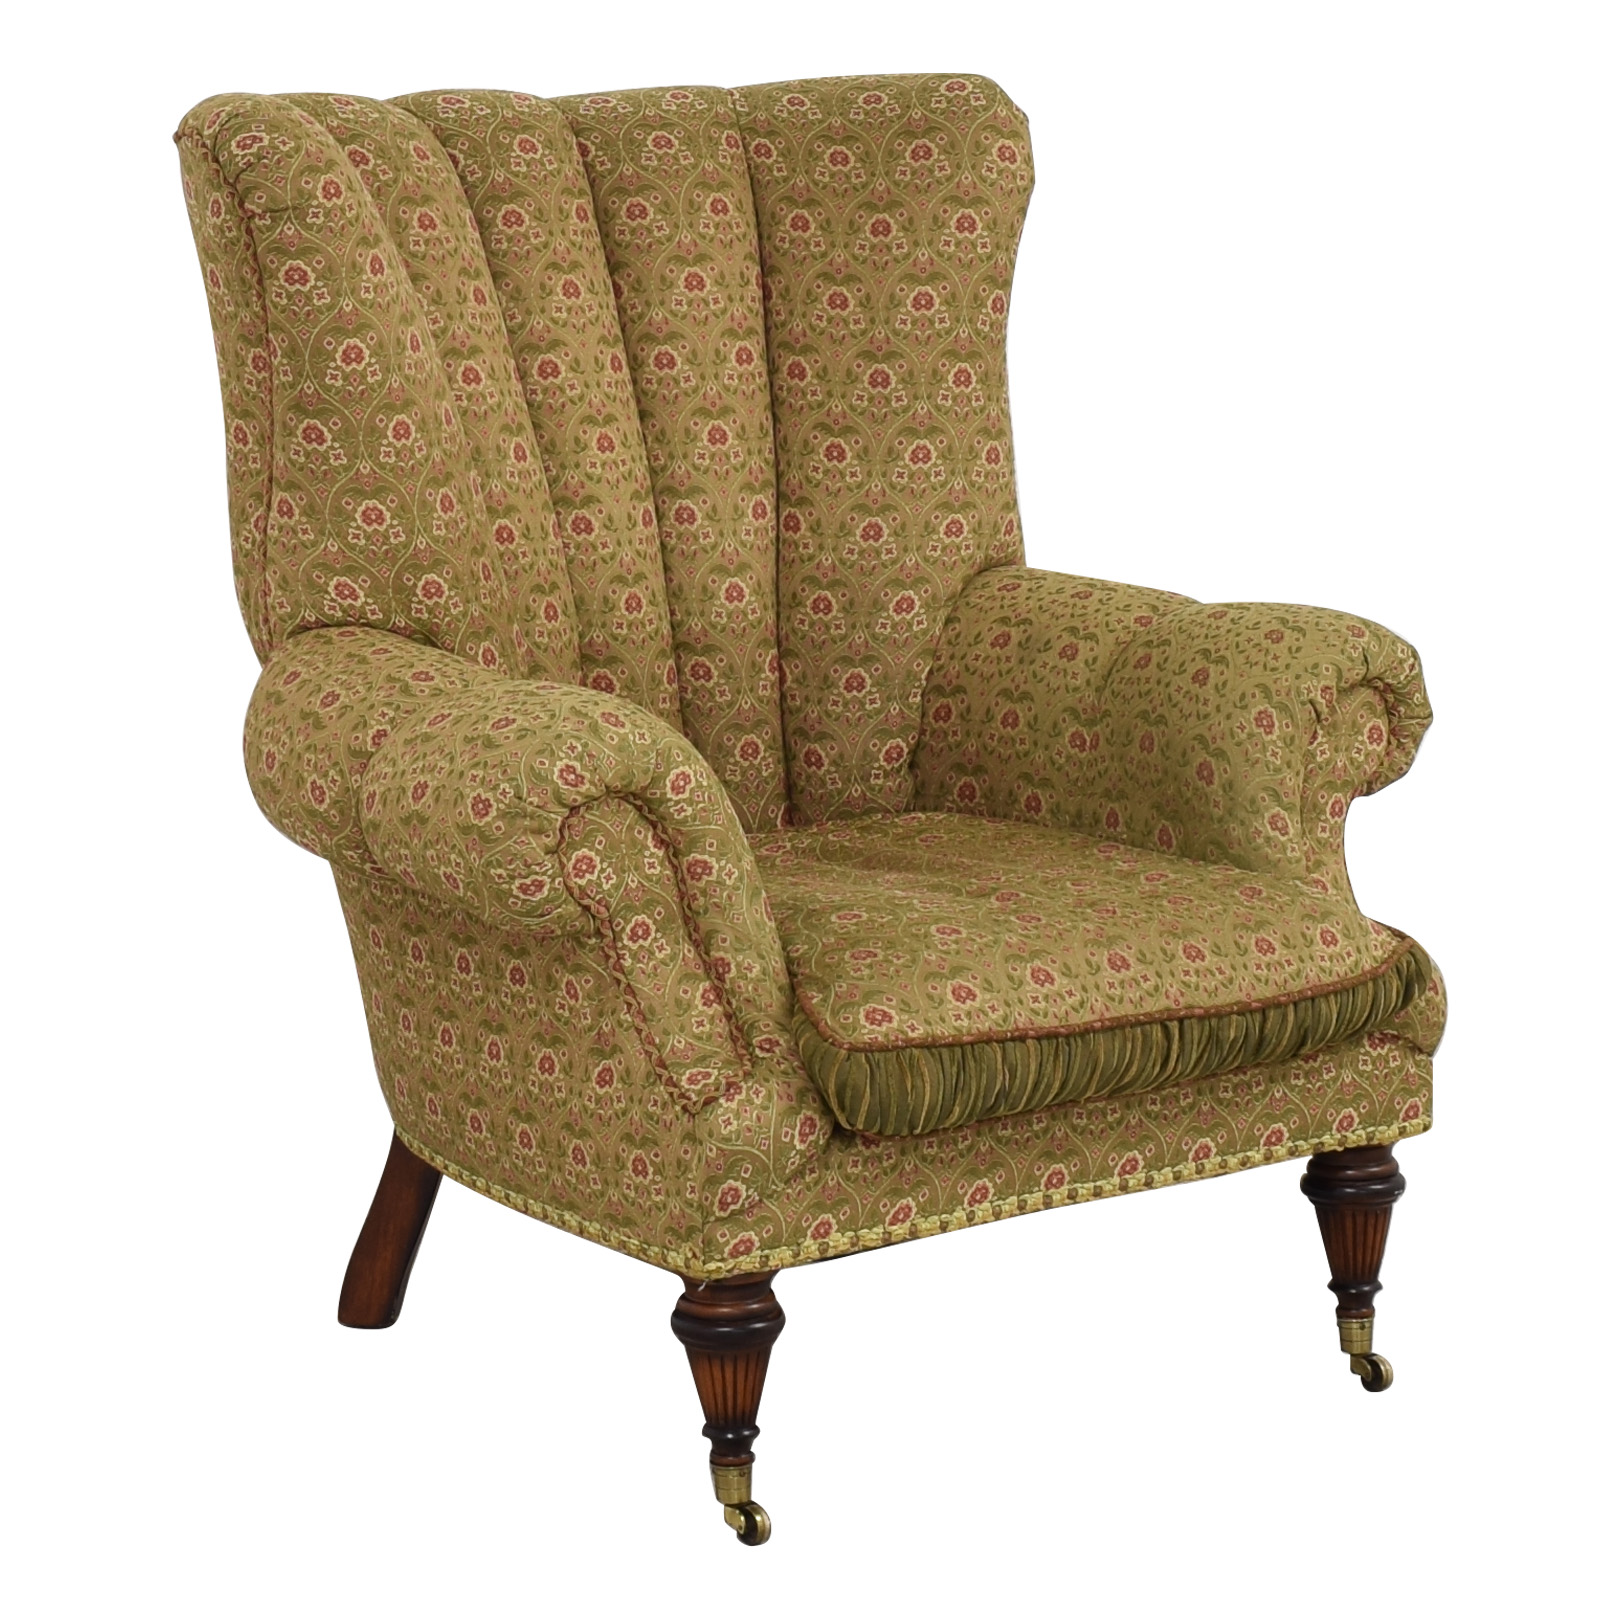 Key City Furniture Key City Jeff Zimmerman Wingback Lounge Chair dimensions